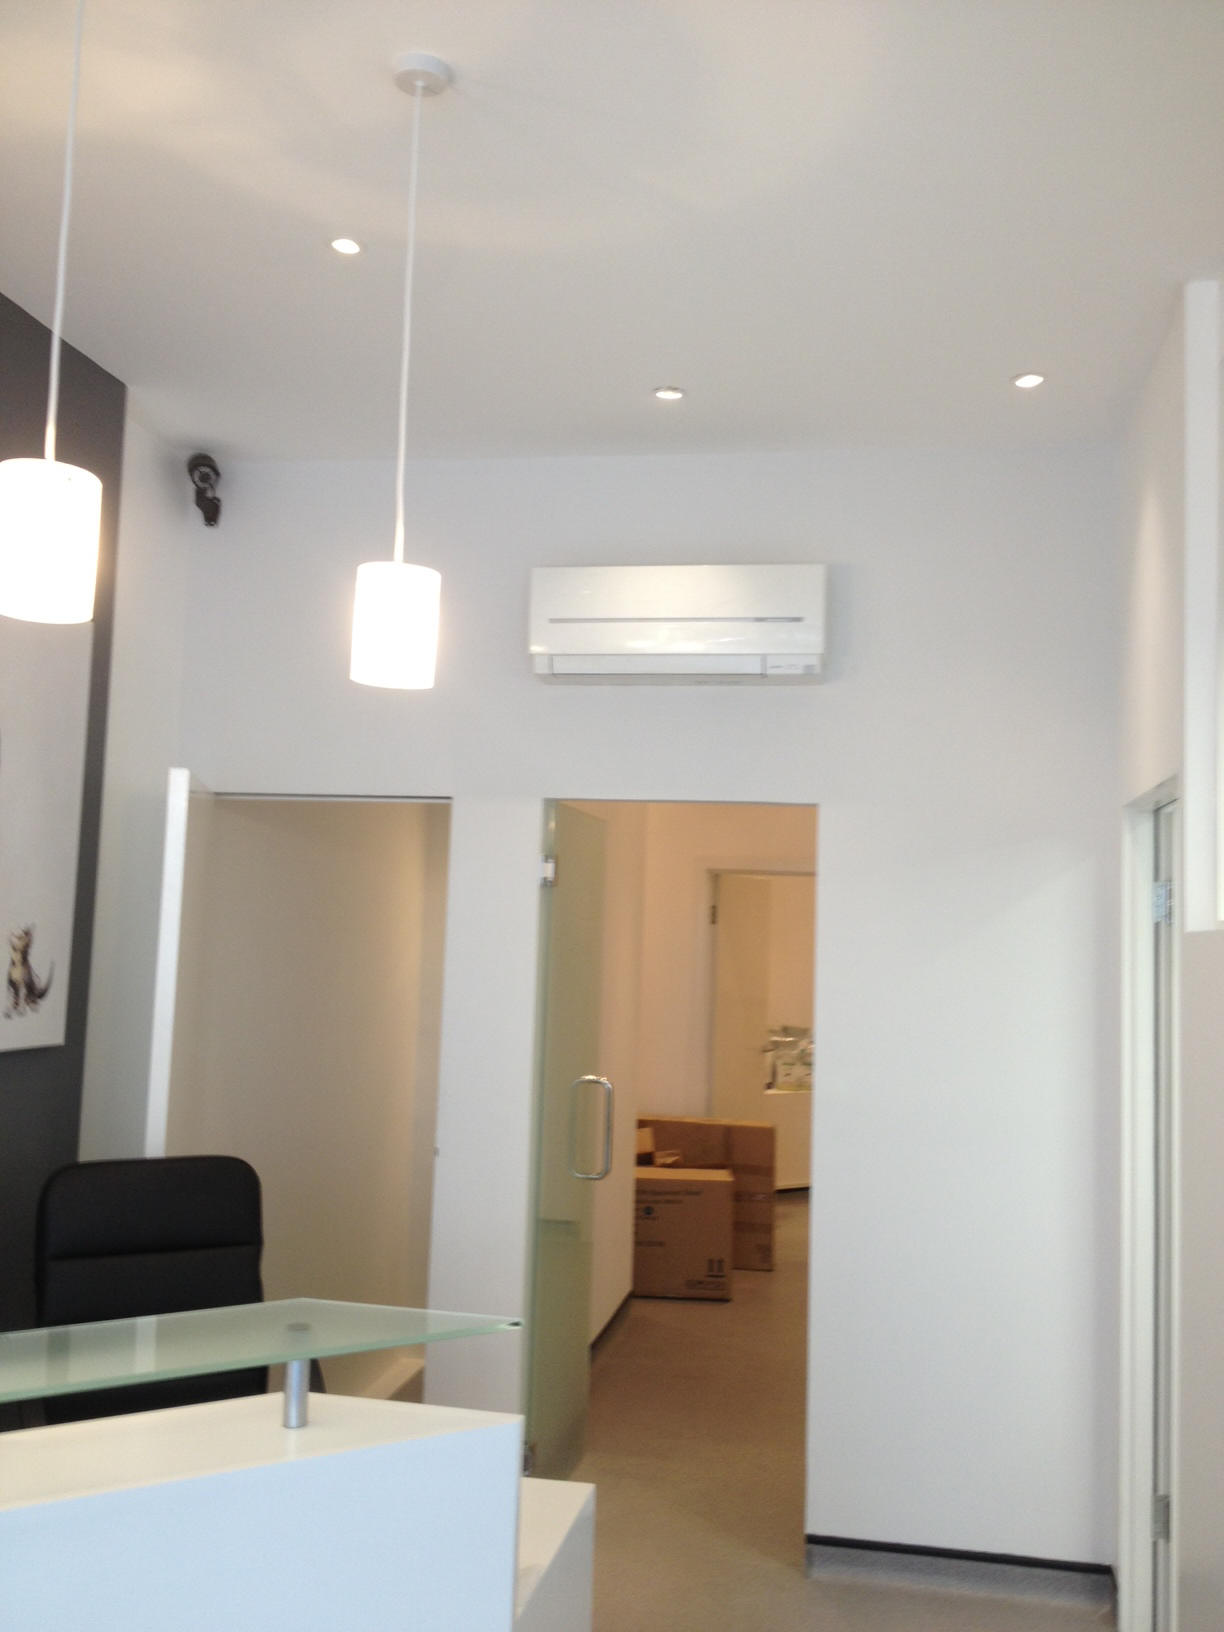 kensington veterinary surgery air conditioning. Black Bedroom Furniture Sets. Home Design Ideas